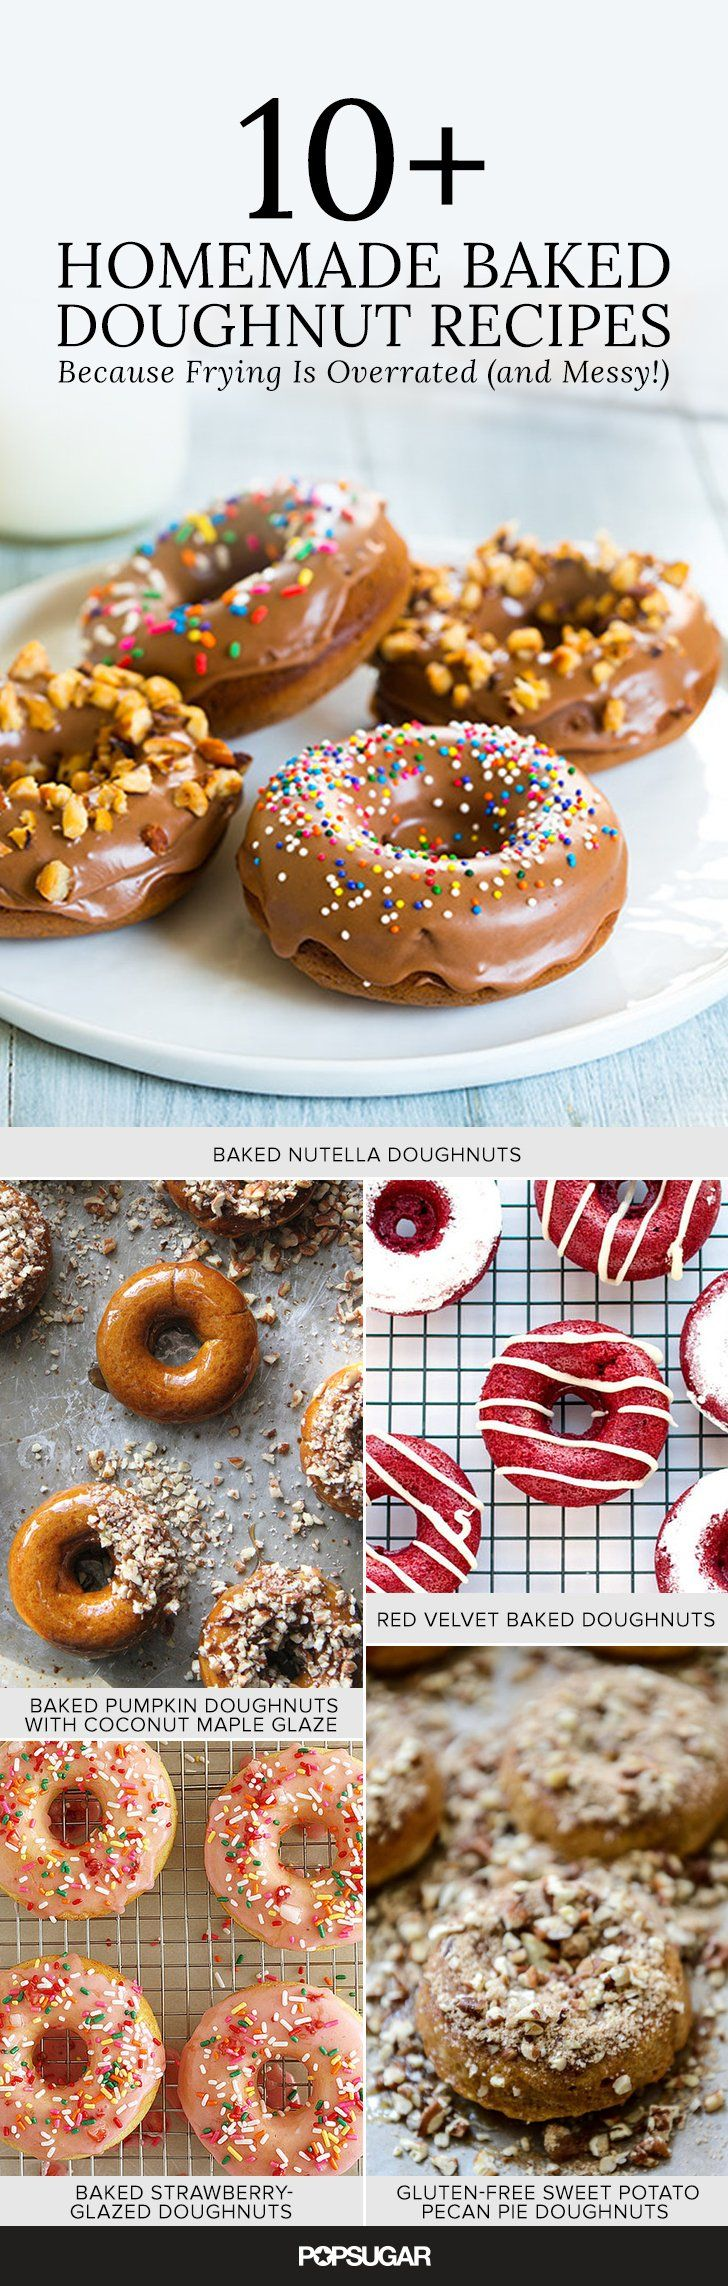 20 baked doughnut recipes, because frying is overrated (and messy!)